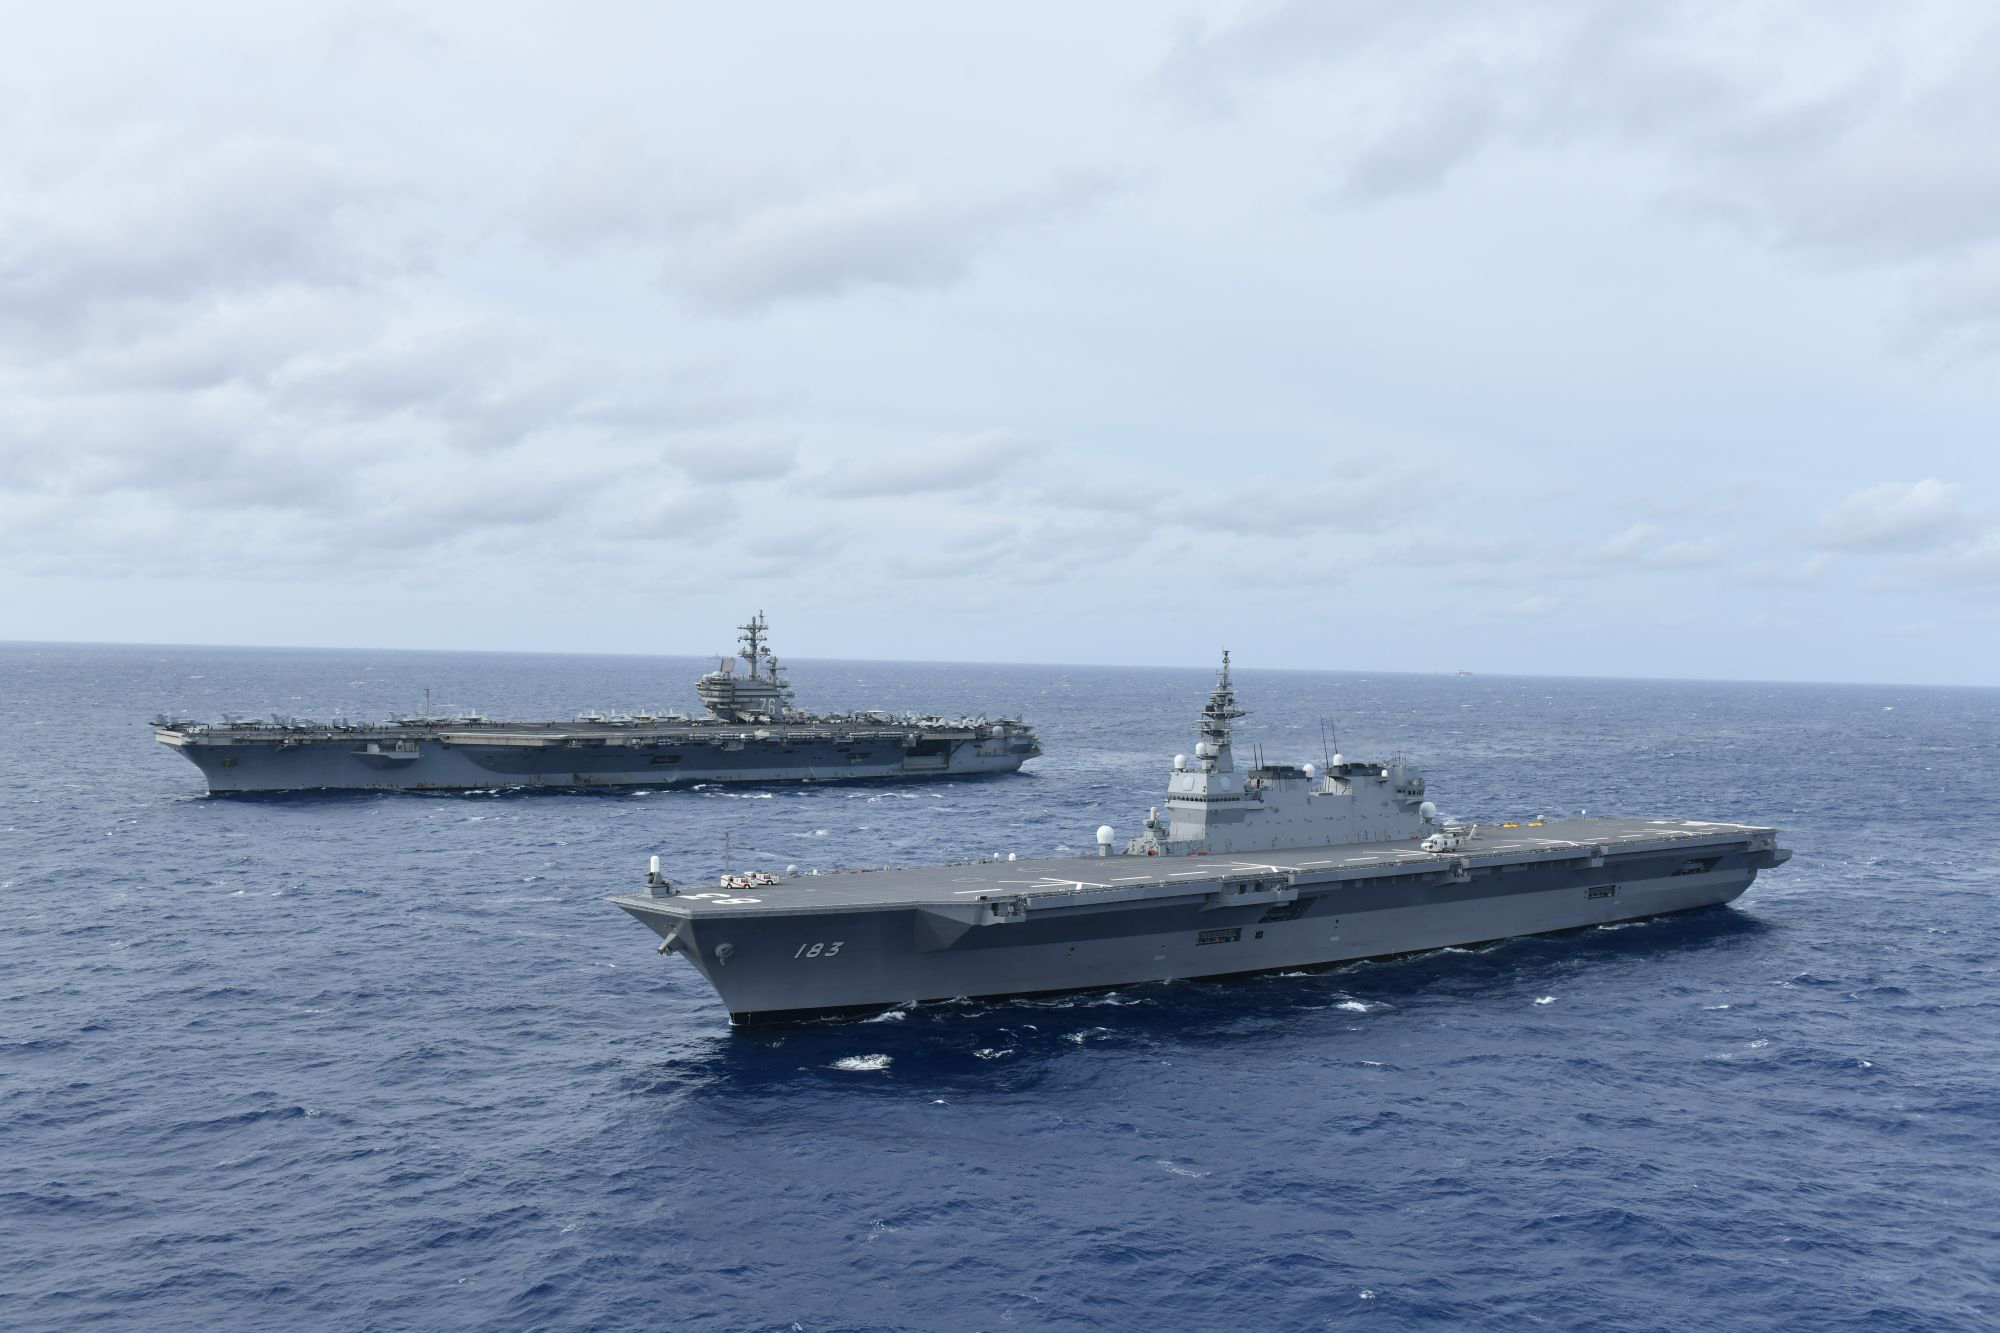 The Maritime Self-Defense Force's Izumo, Japan's largest flat-topped helicopter carrier, joins the United States' sole forward-deployed aircraft carrier, the USS Ronald Reagan, for joint military exercises in the disputed South China Sea this week. | MARITIME SELF-DEFENSE FORCE